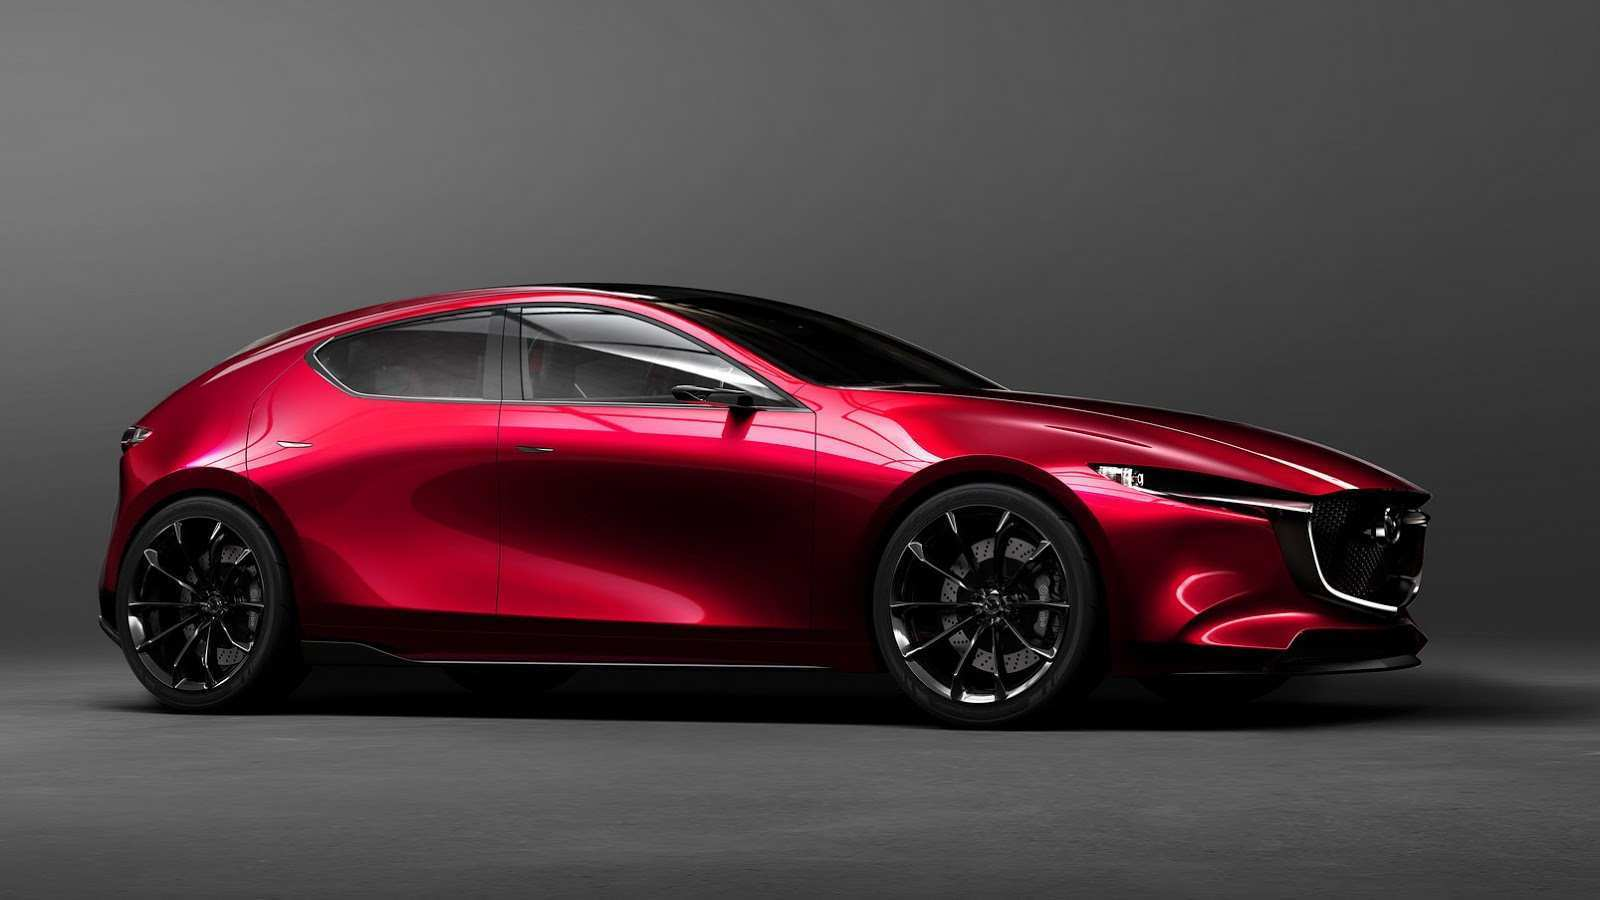 91 Concept of 2019 Mazda 3 Turbo Concept by 2019 Mazda 3 Turbo